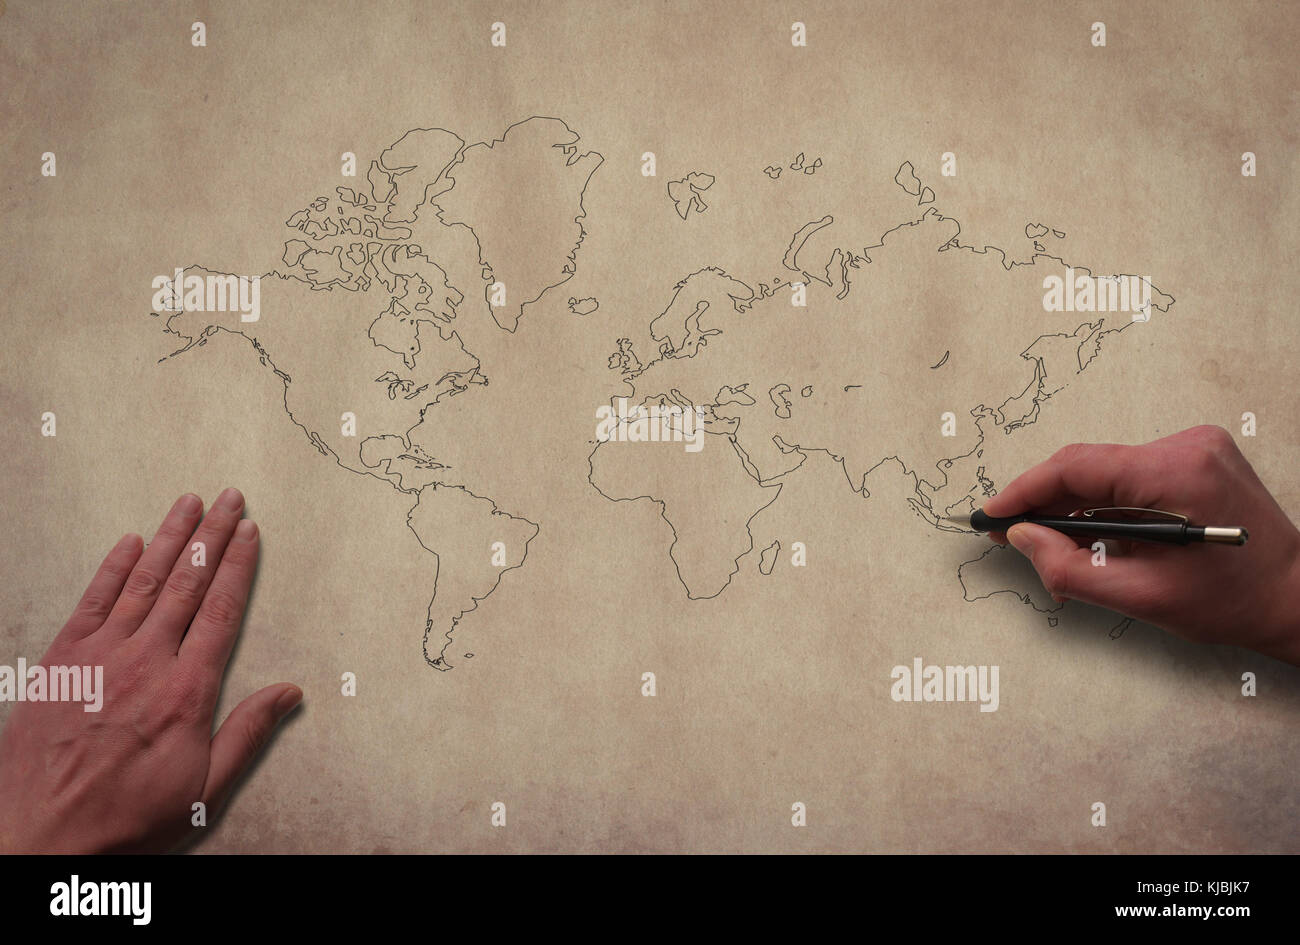 Hands drawing world map outline world map on the old paper texture hands drawing world map outline world map on the old paper texture background hands drawing contour of global map with pencil gumiabroncs Gallery